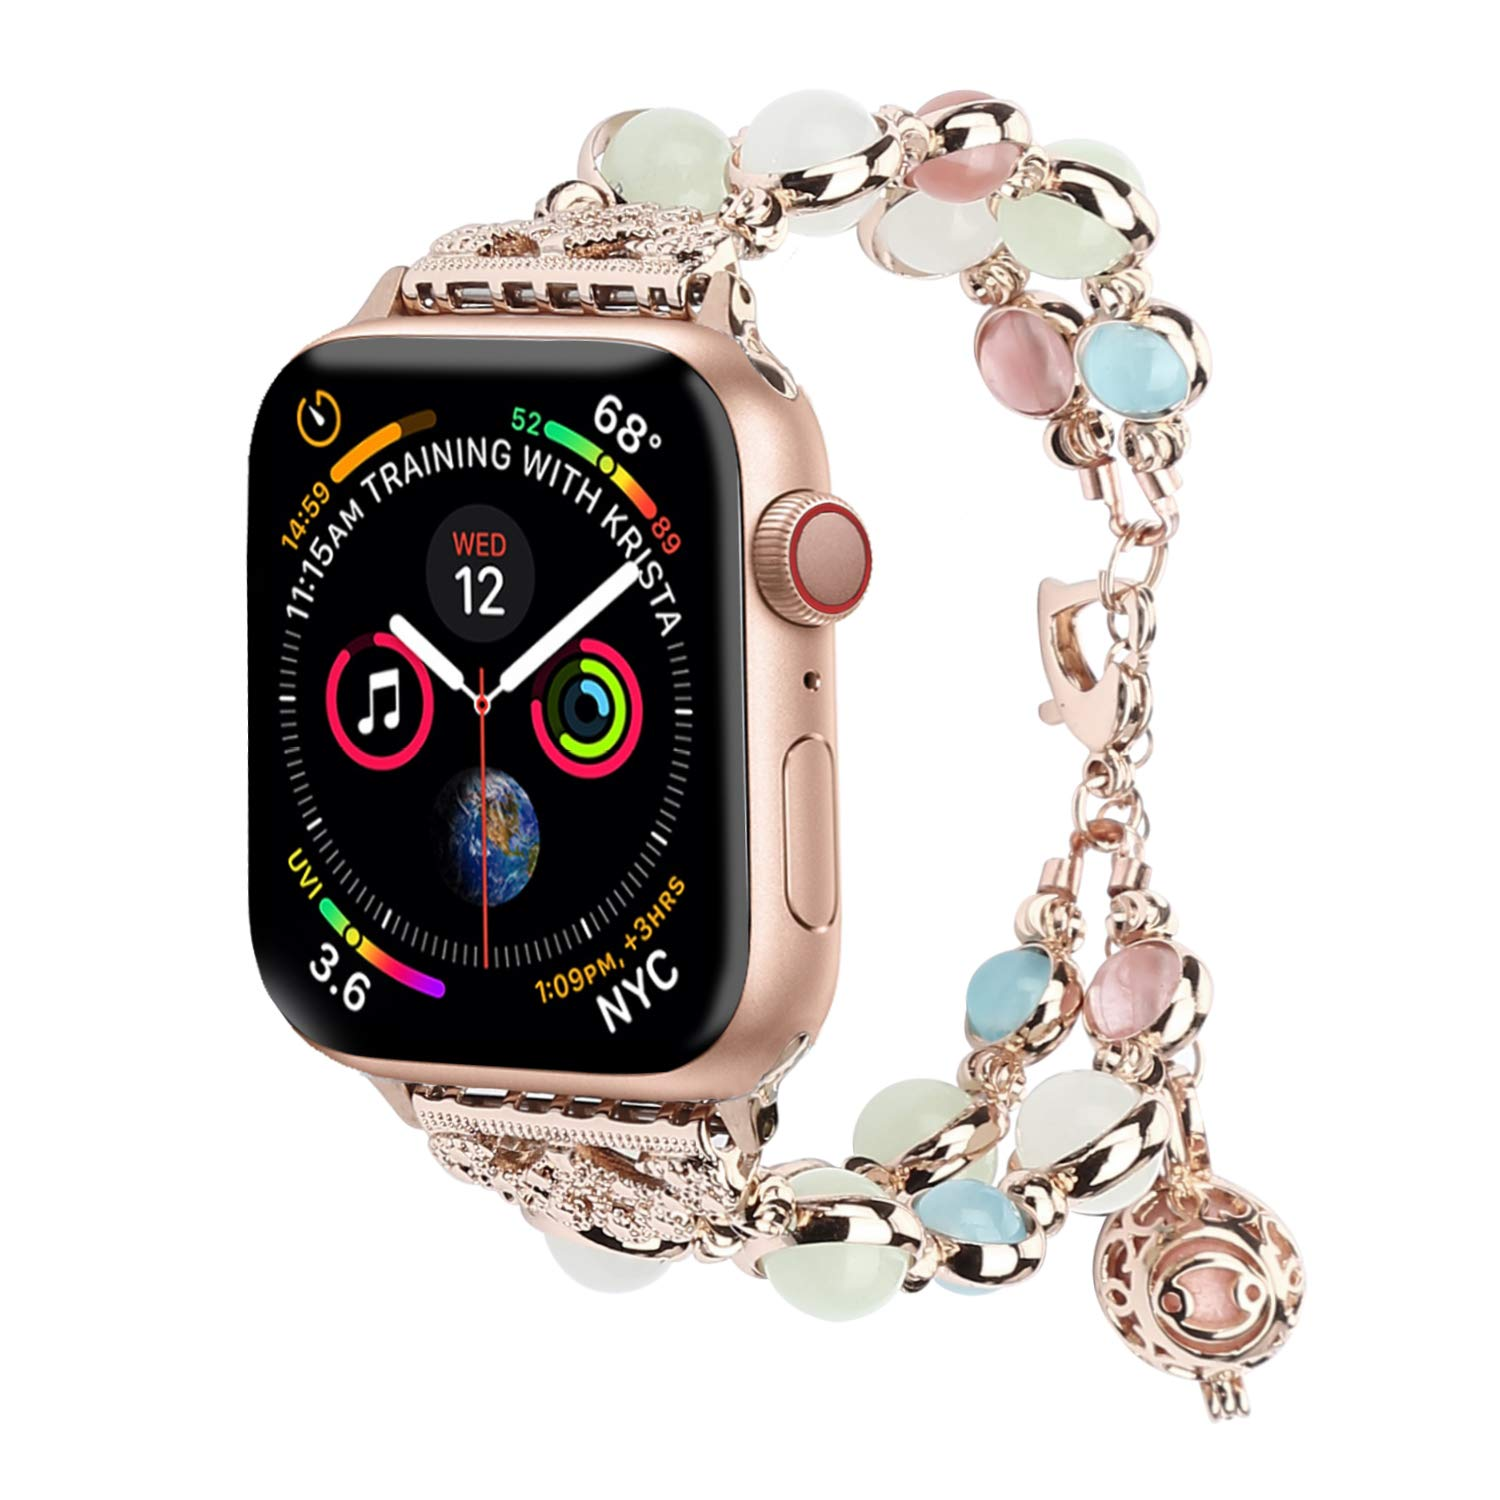 TILON for Apple Watch Band 38mm 40mm Series 5/4/3/2/1, Adjustable Wristband Handmade Night Luminous Pearl iWatch Bracelet with Essential Oil/Perfume Storage Pendant for Women/Girls(Rose Gold) by TILON